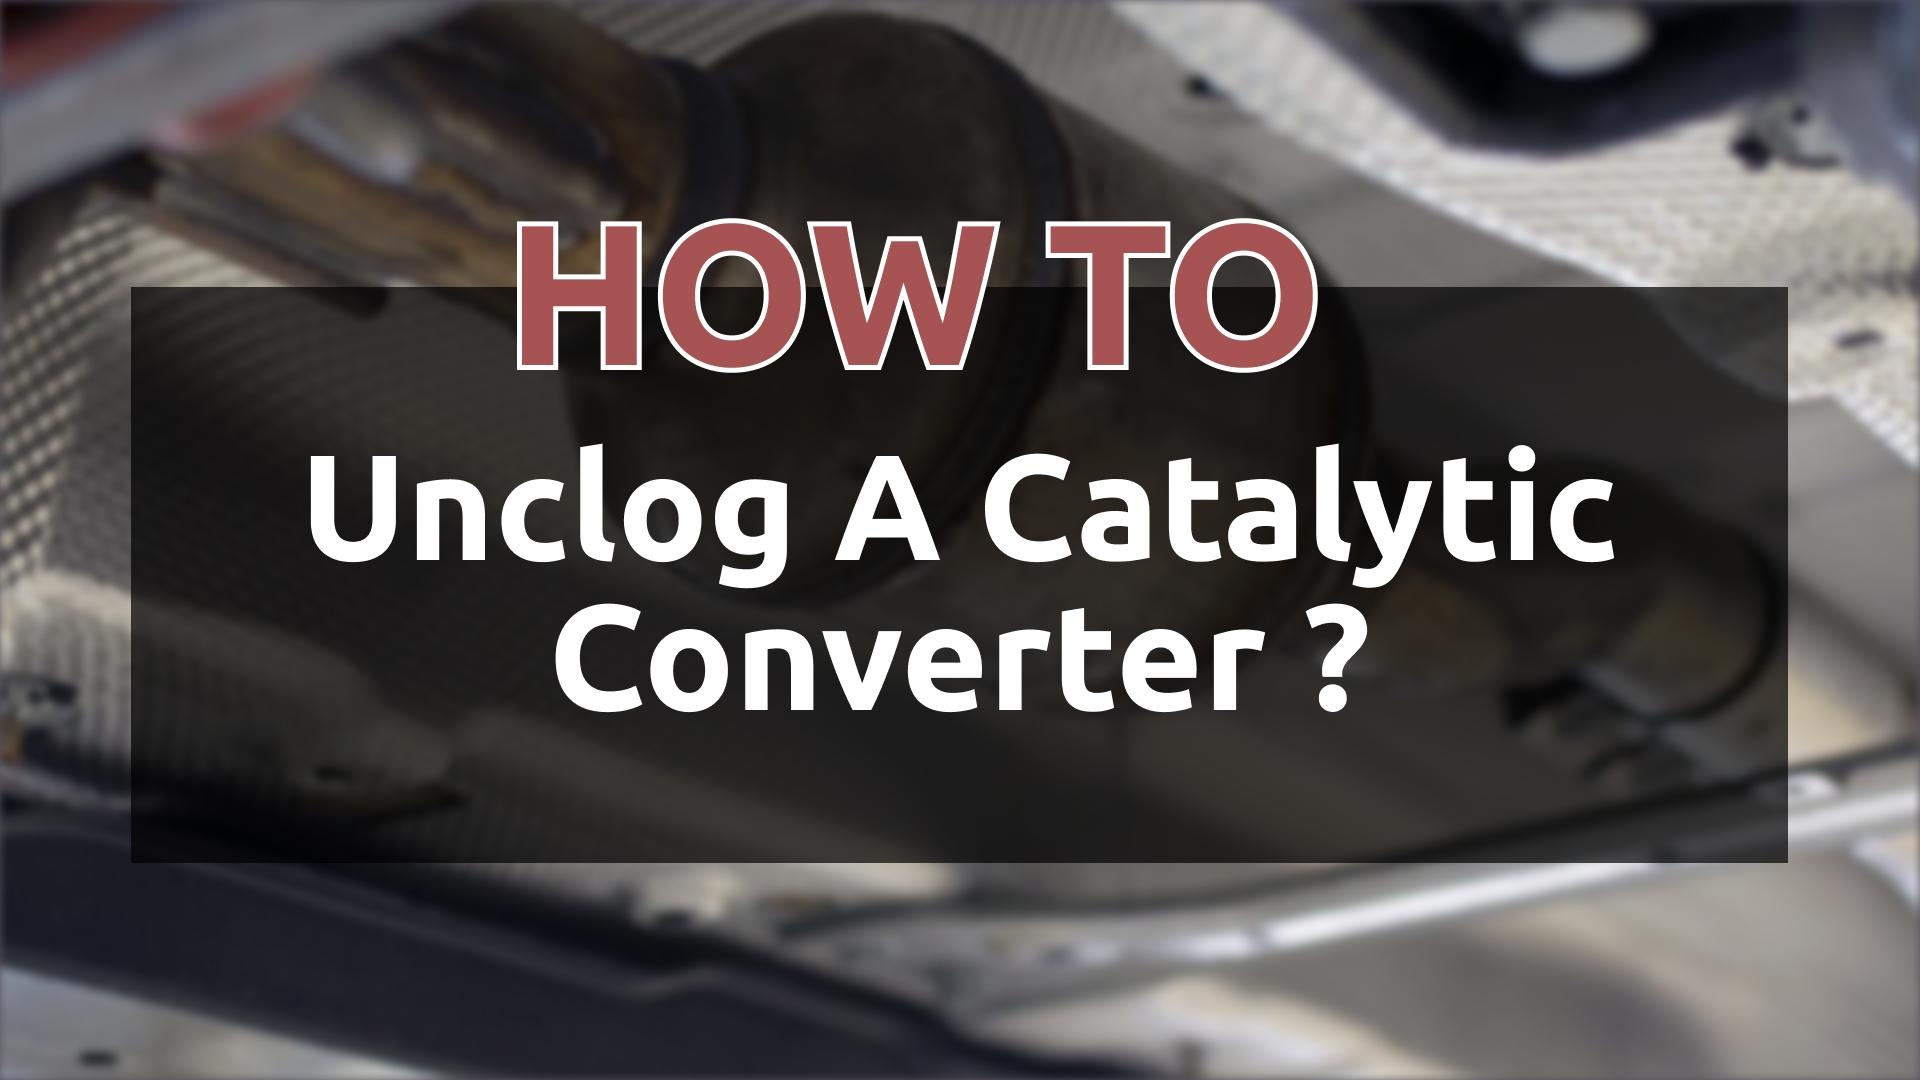 How To Unclog A Catalytic Converter: image